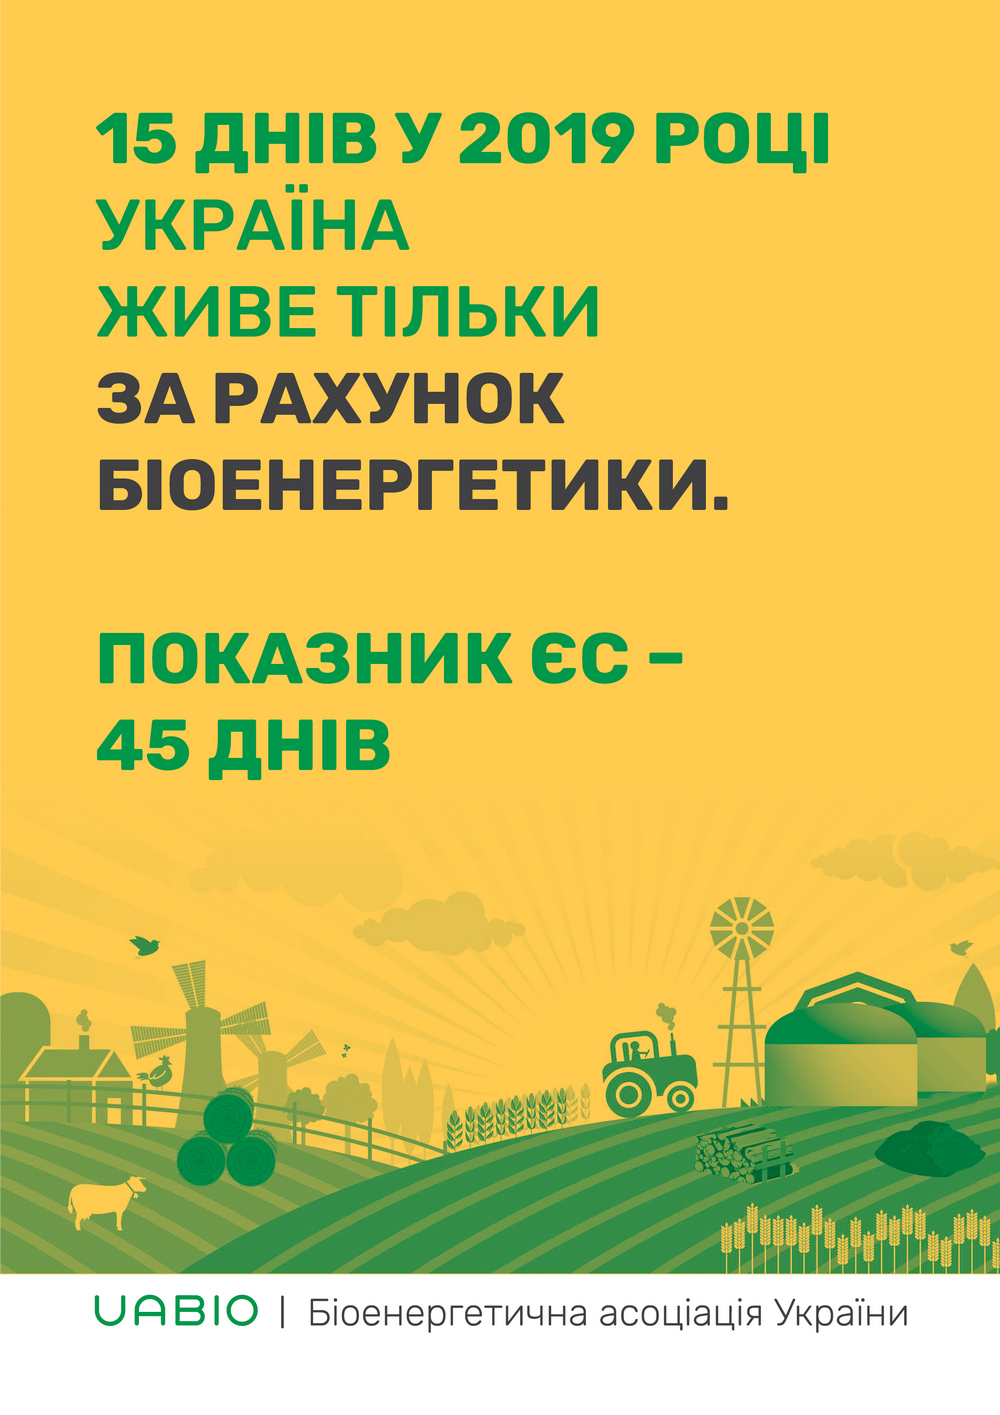 ukrainian-bioenergy-day-campaign-1.jpg